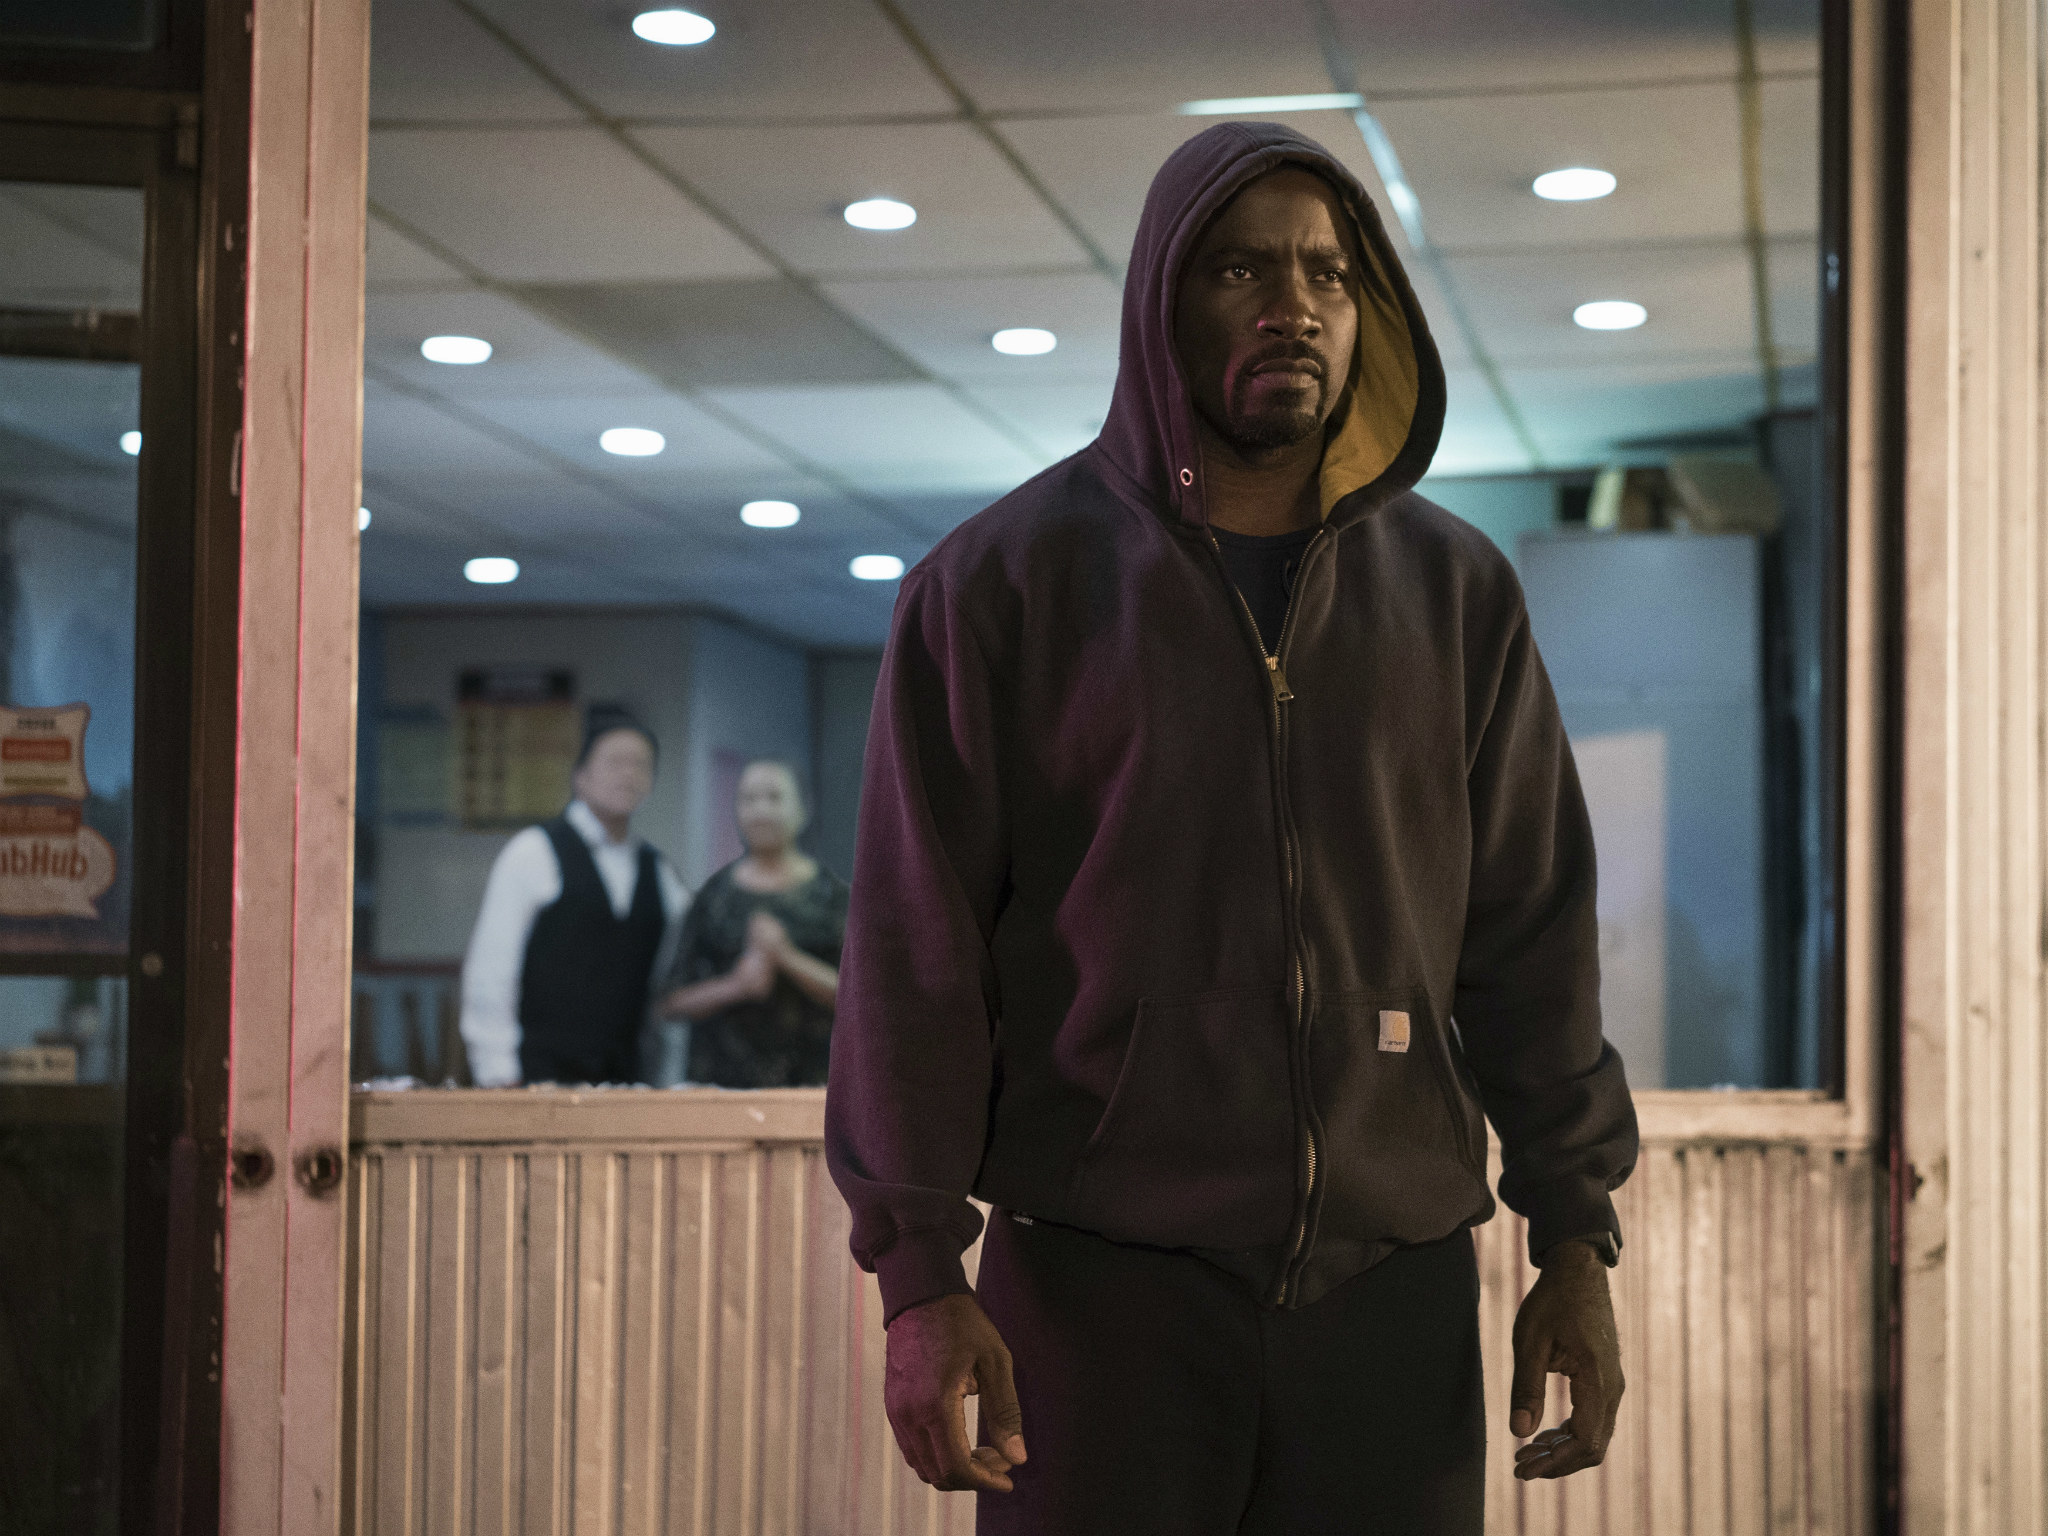 Five things you need to know about Netflix's 'Luke Cage'